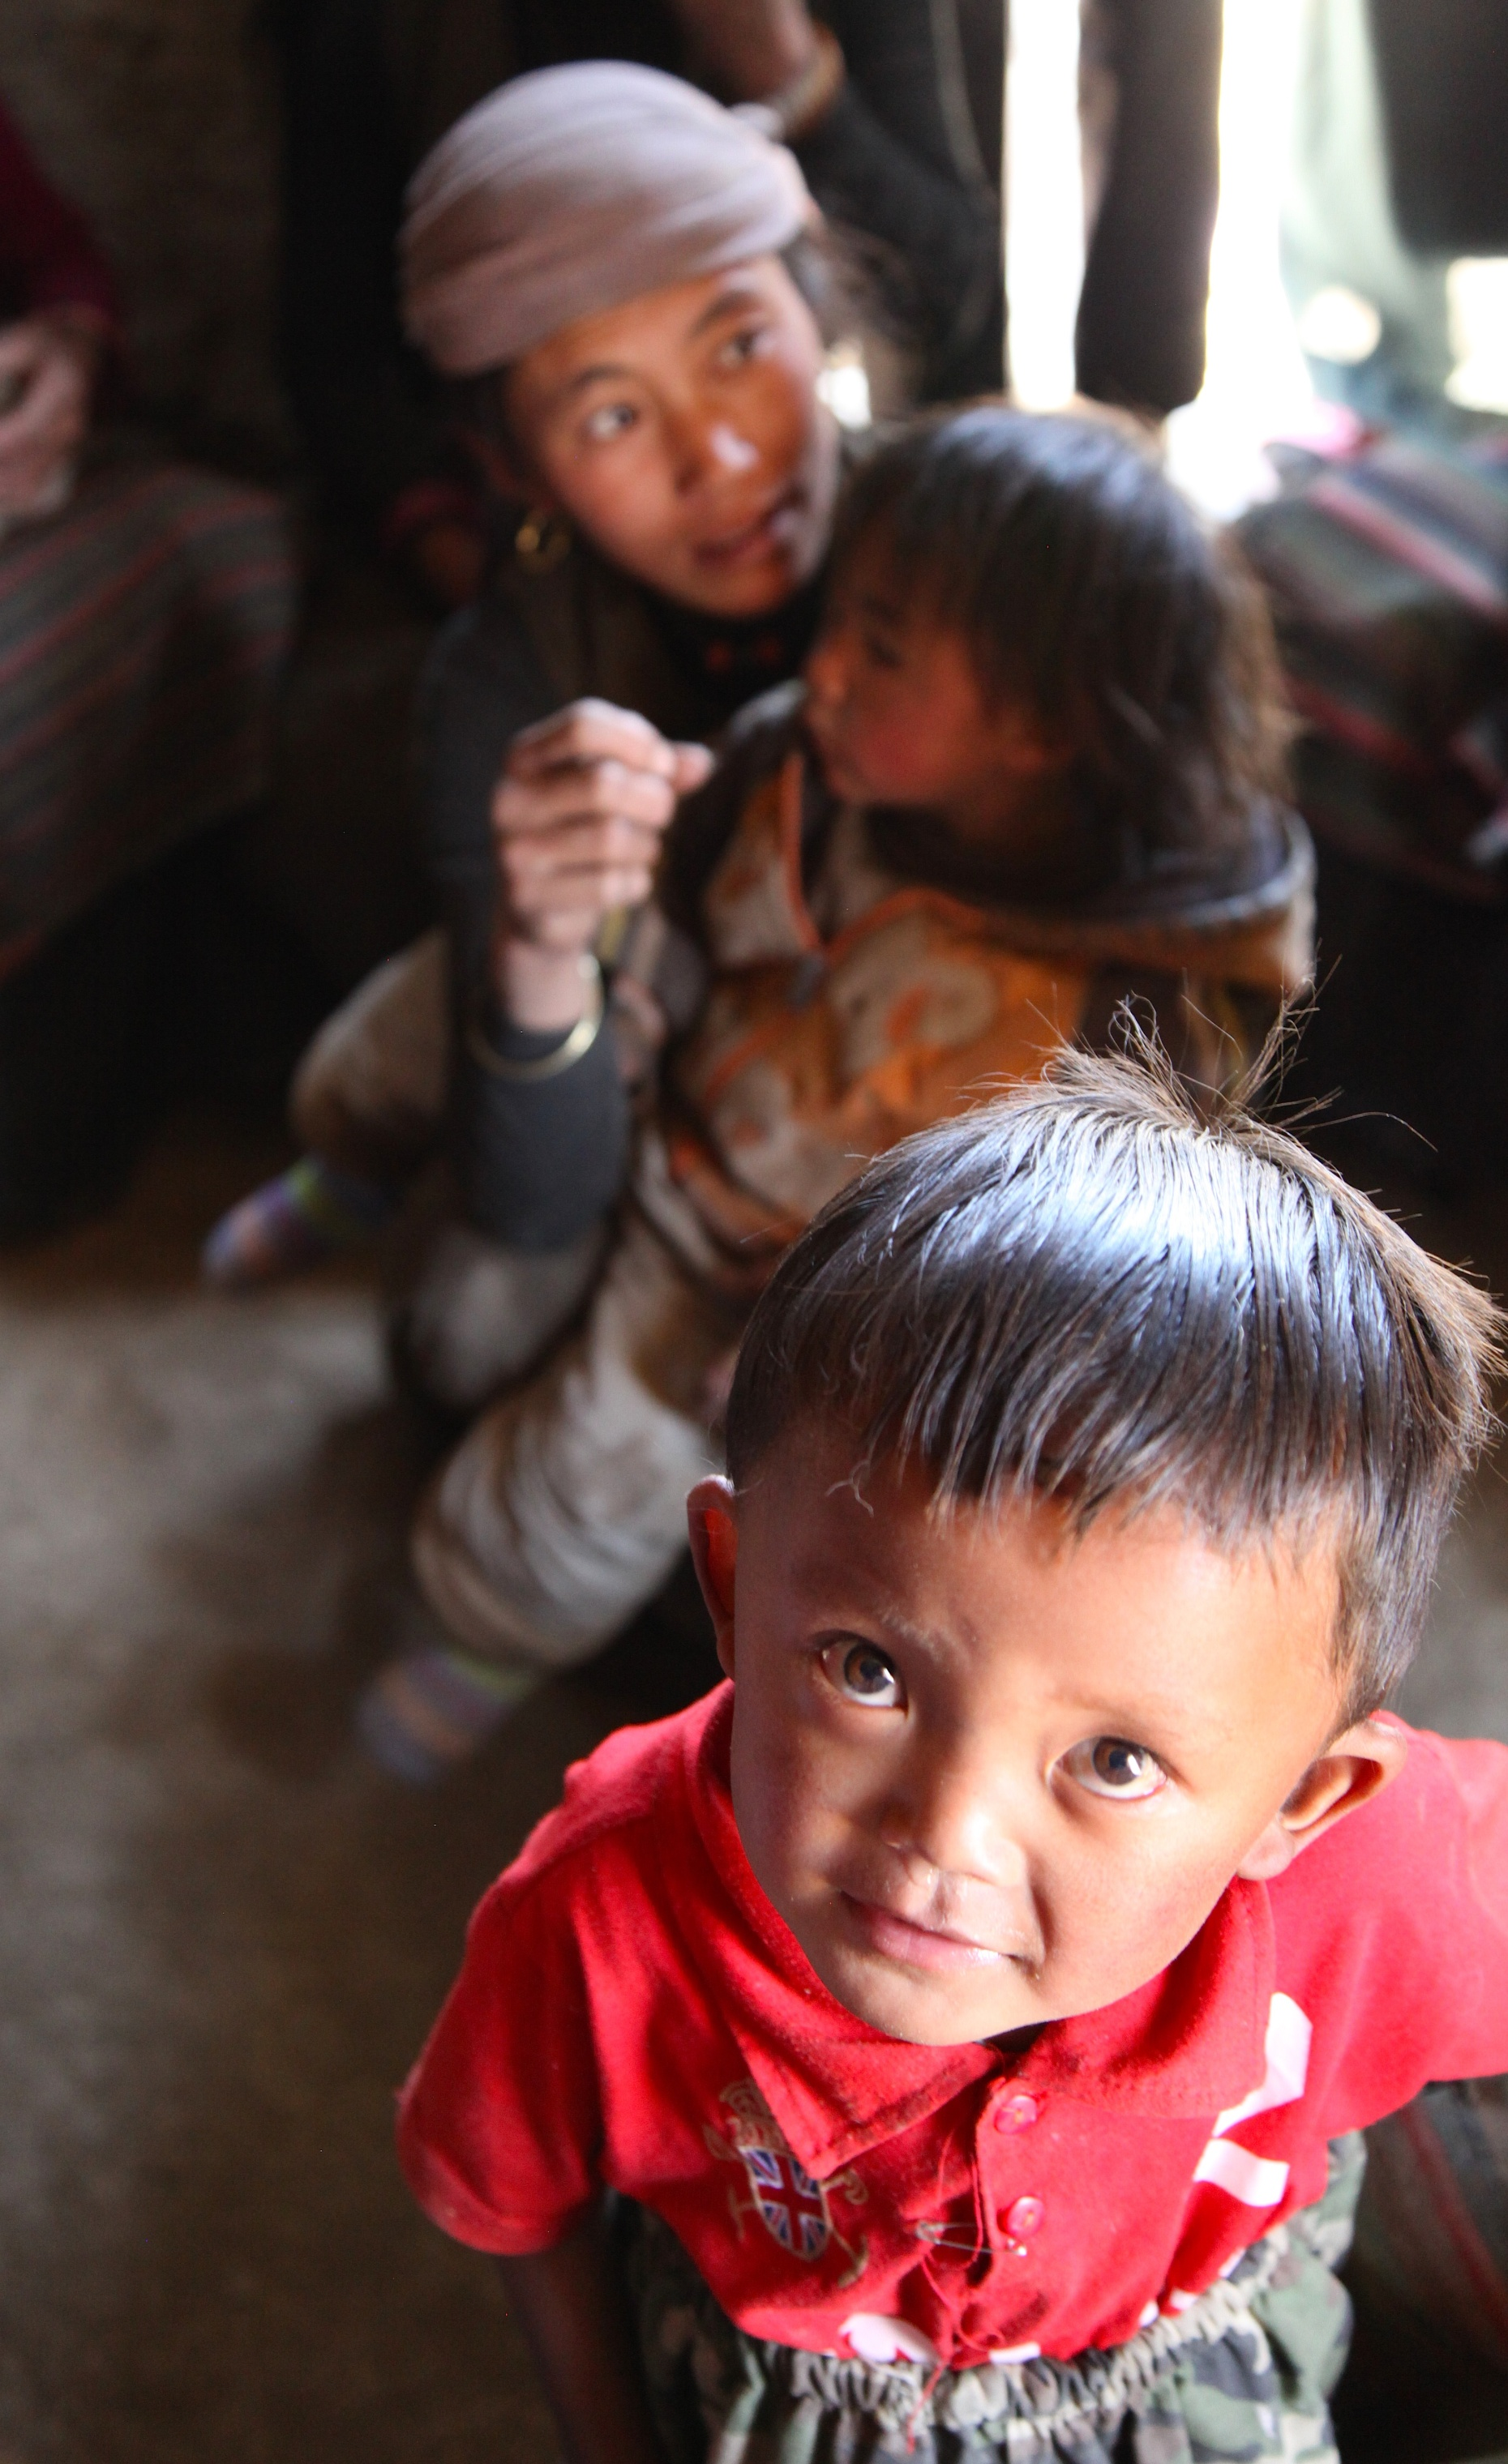 A child in Samdzong getting medical care from our expedition doctor. Photo © Liesl Clark